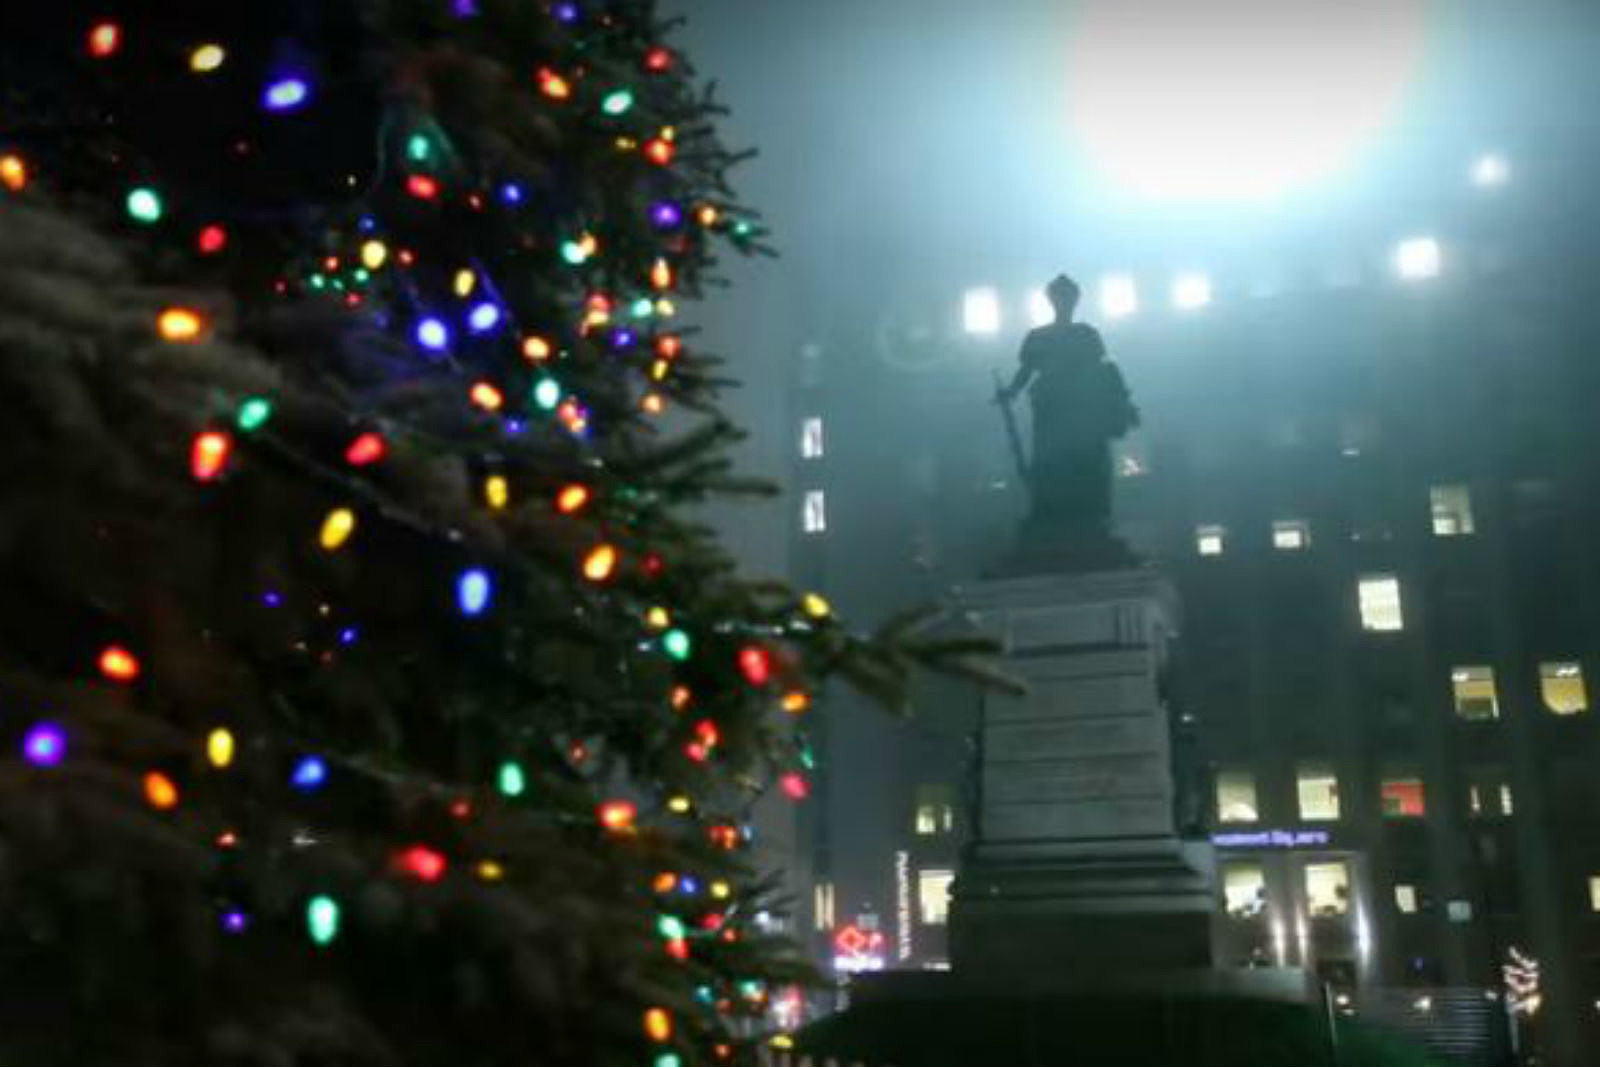 Portland Maine Christmas.This Video Will Make You Ache For Christmas In Portland Send It